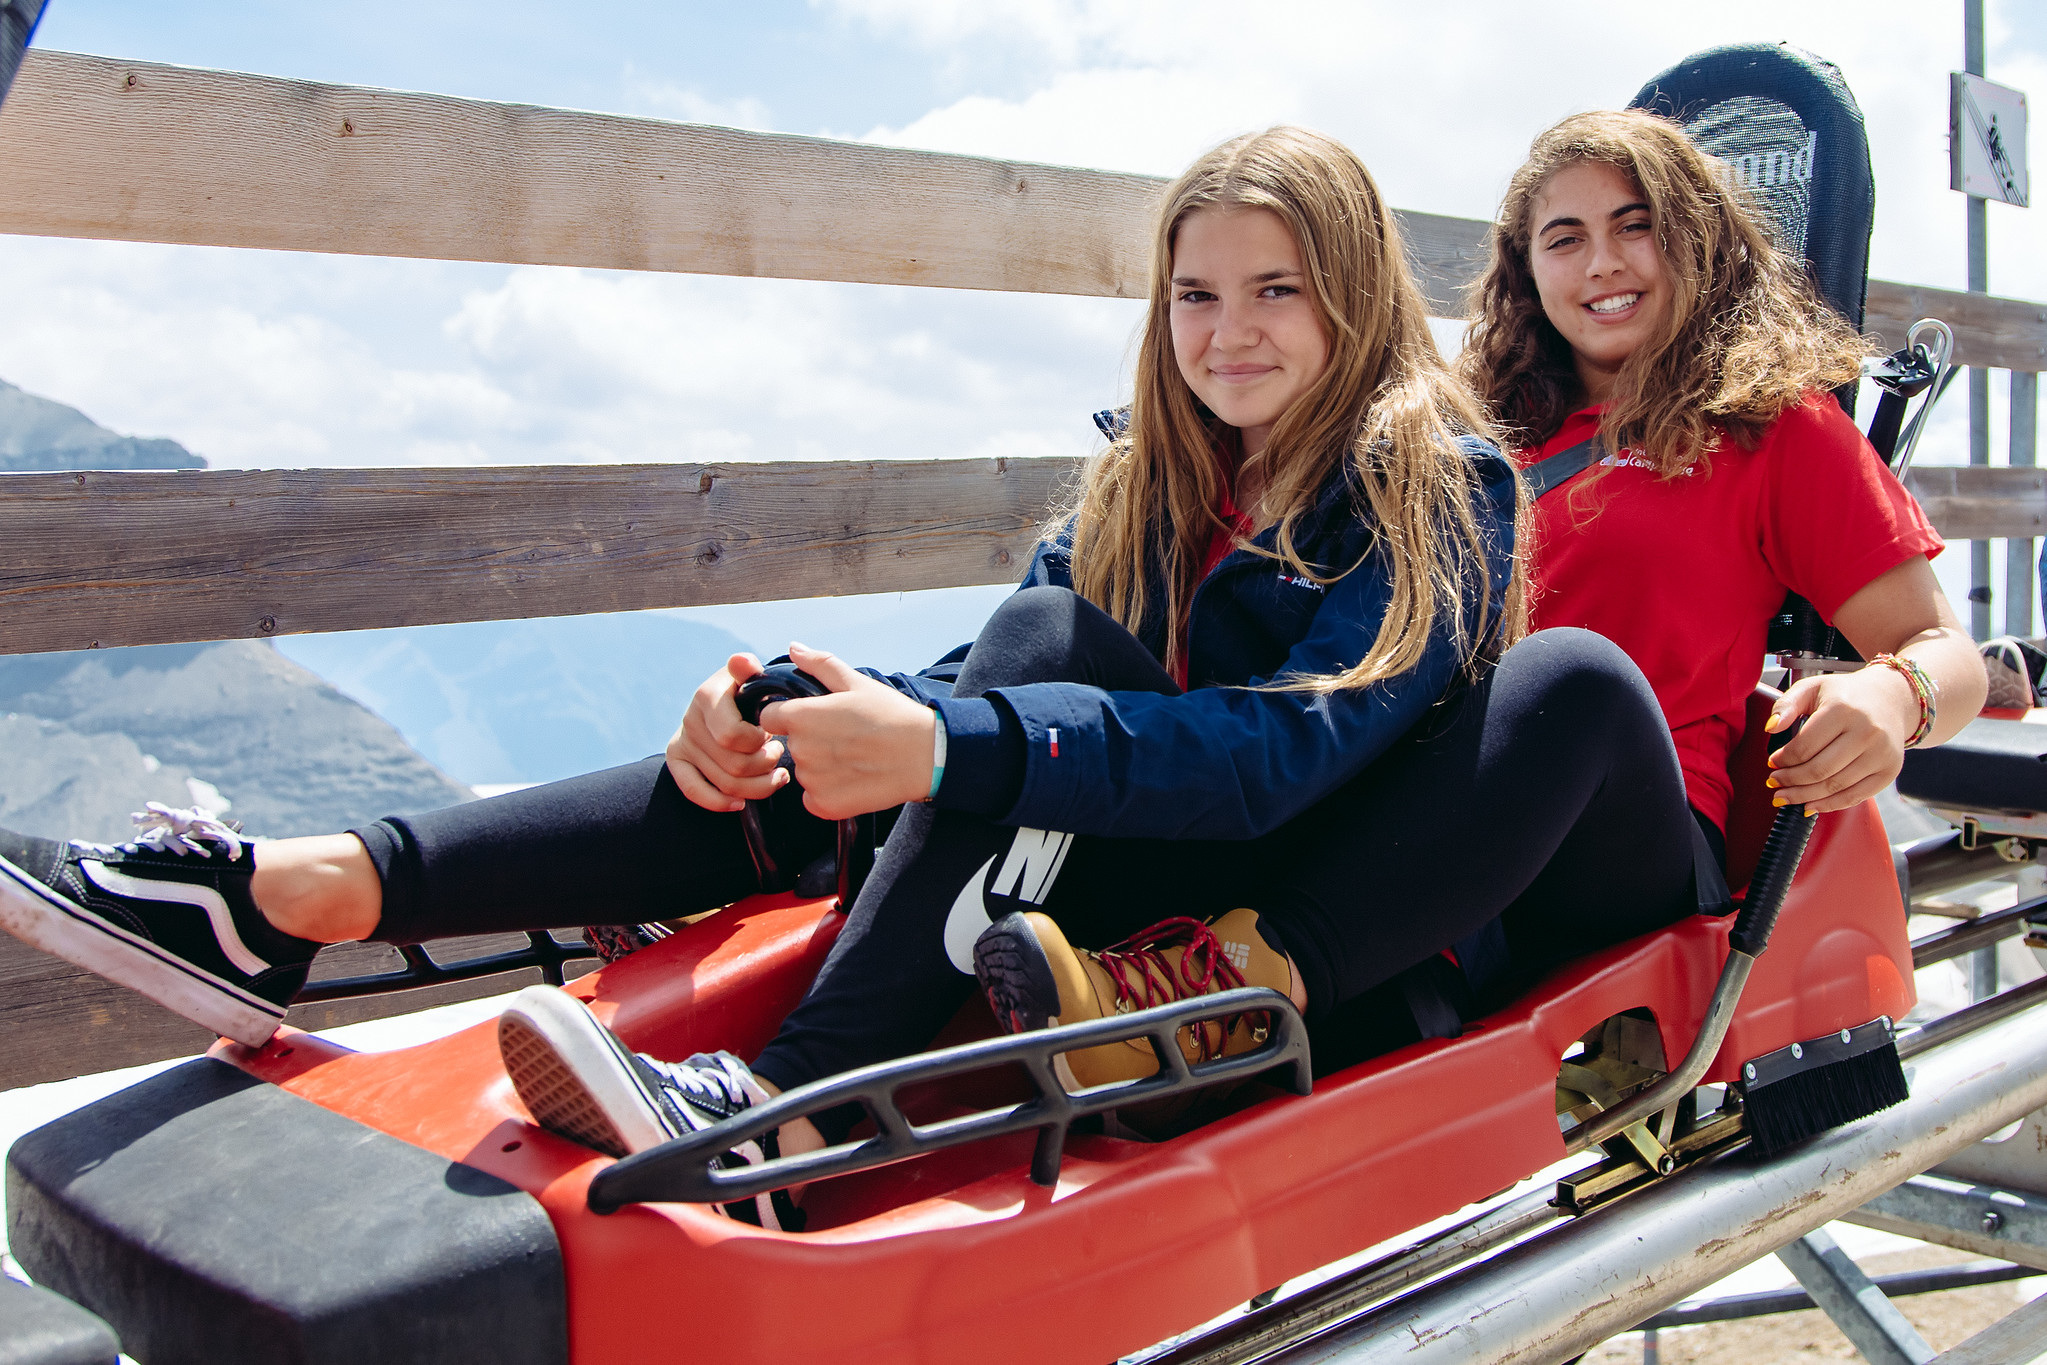 two campers ready to take on Europe's highest mountain coaster